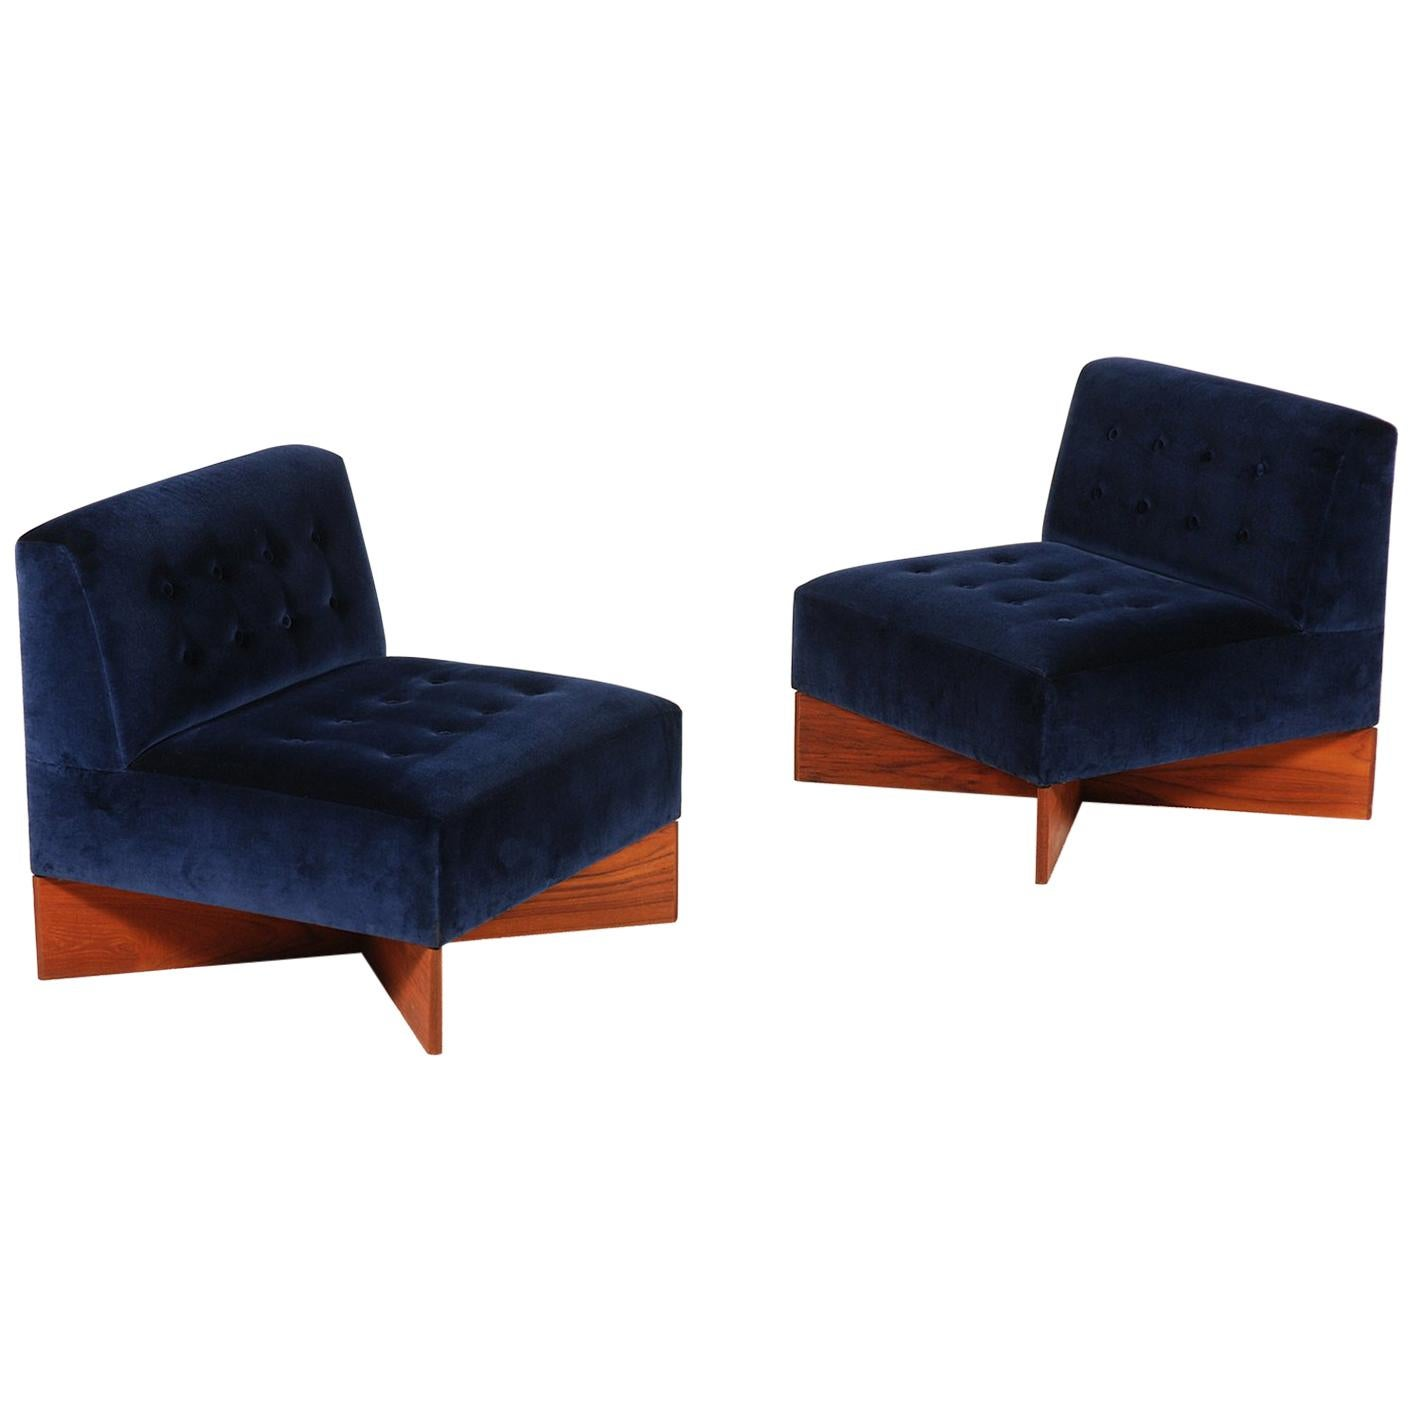 Pair Of U0026quot;Capitoleu0026quot; Easy Chairs By Pierre ...